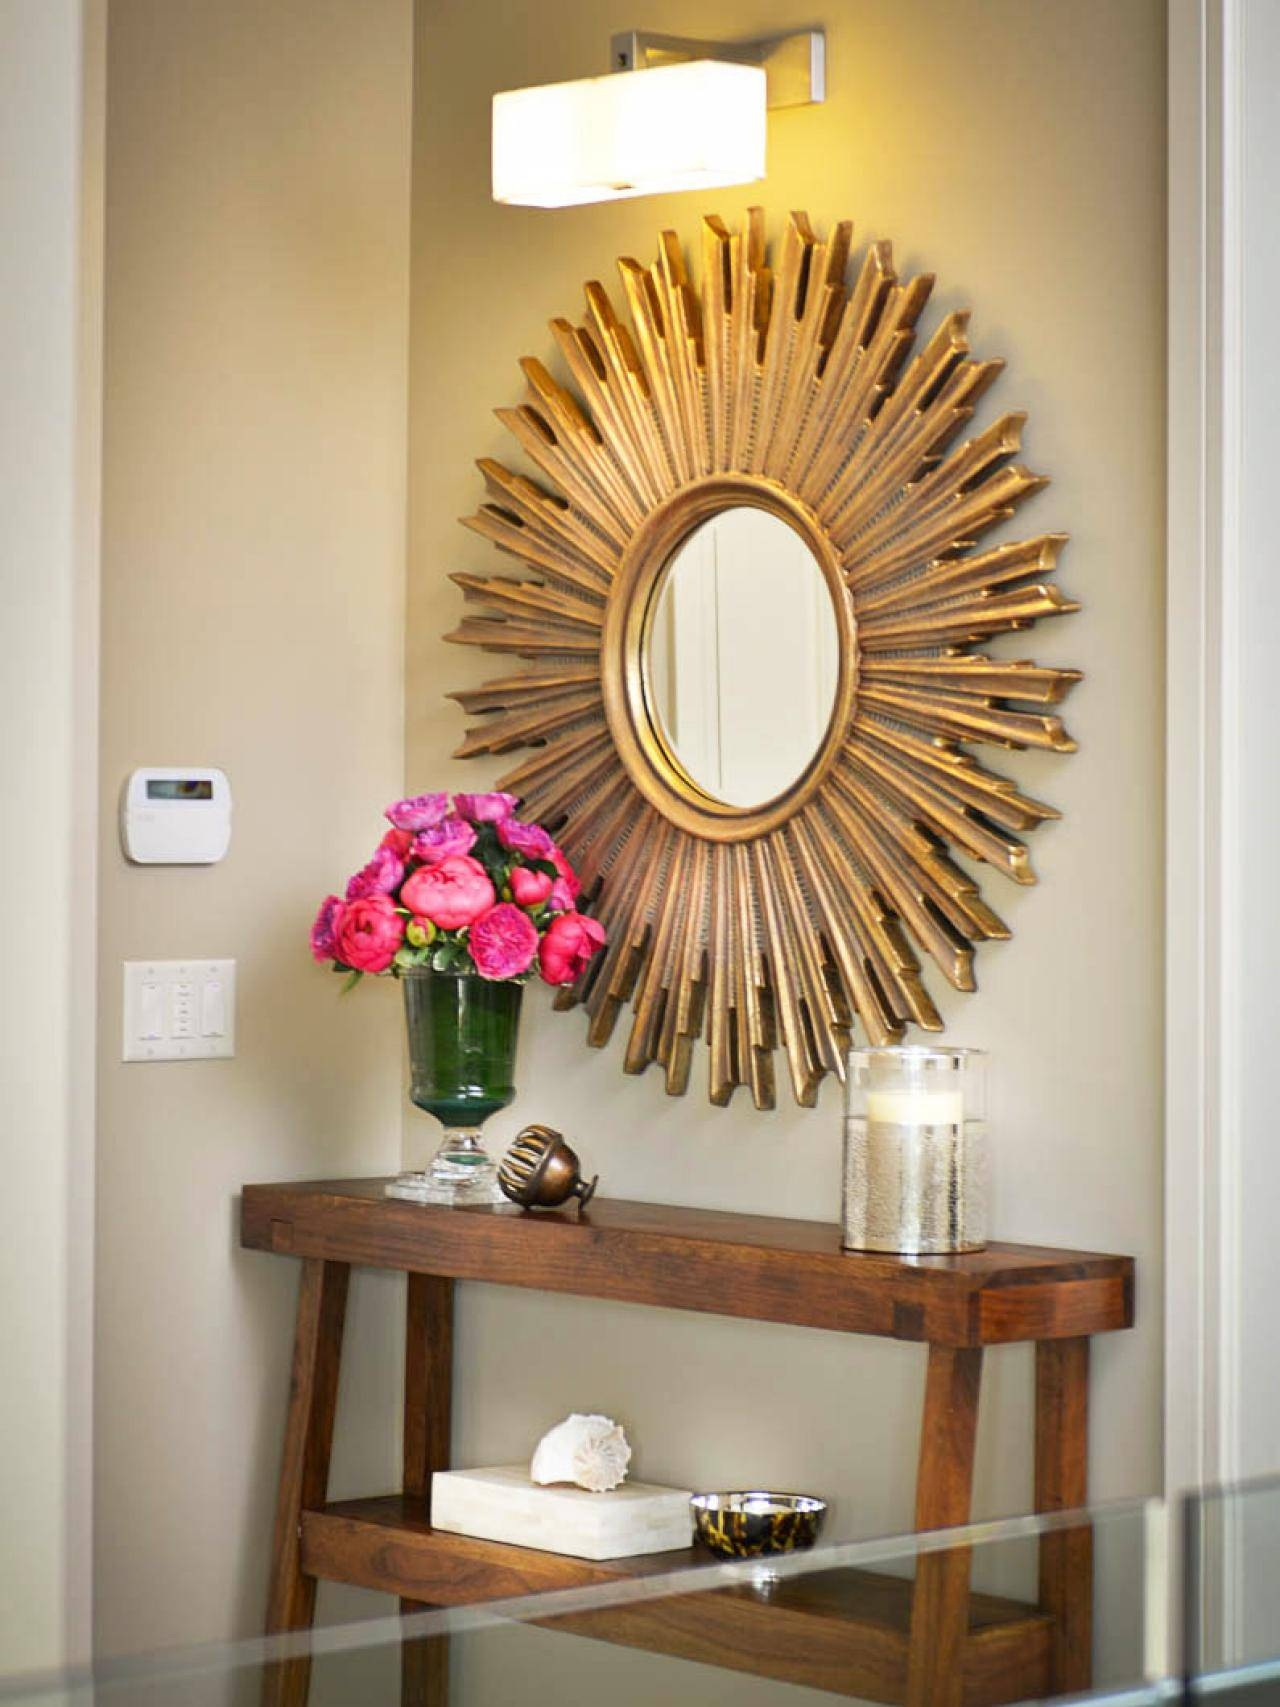 Decorating: Large Gold Sunburst Mirror For Wall Accessories Ideas with regard to Large Sunburst Mirrors (Image 5 of 25)